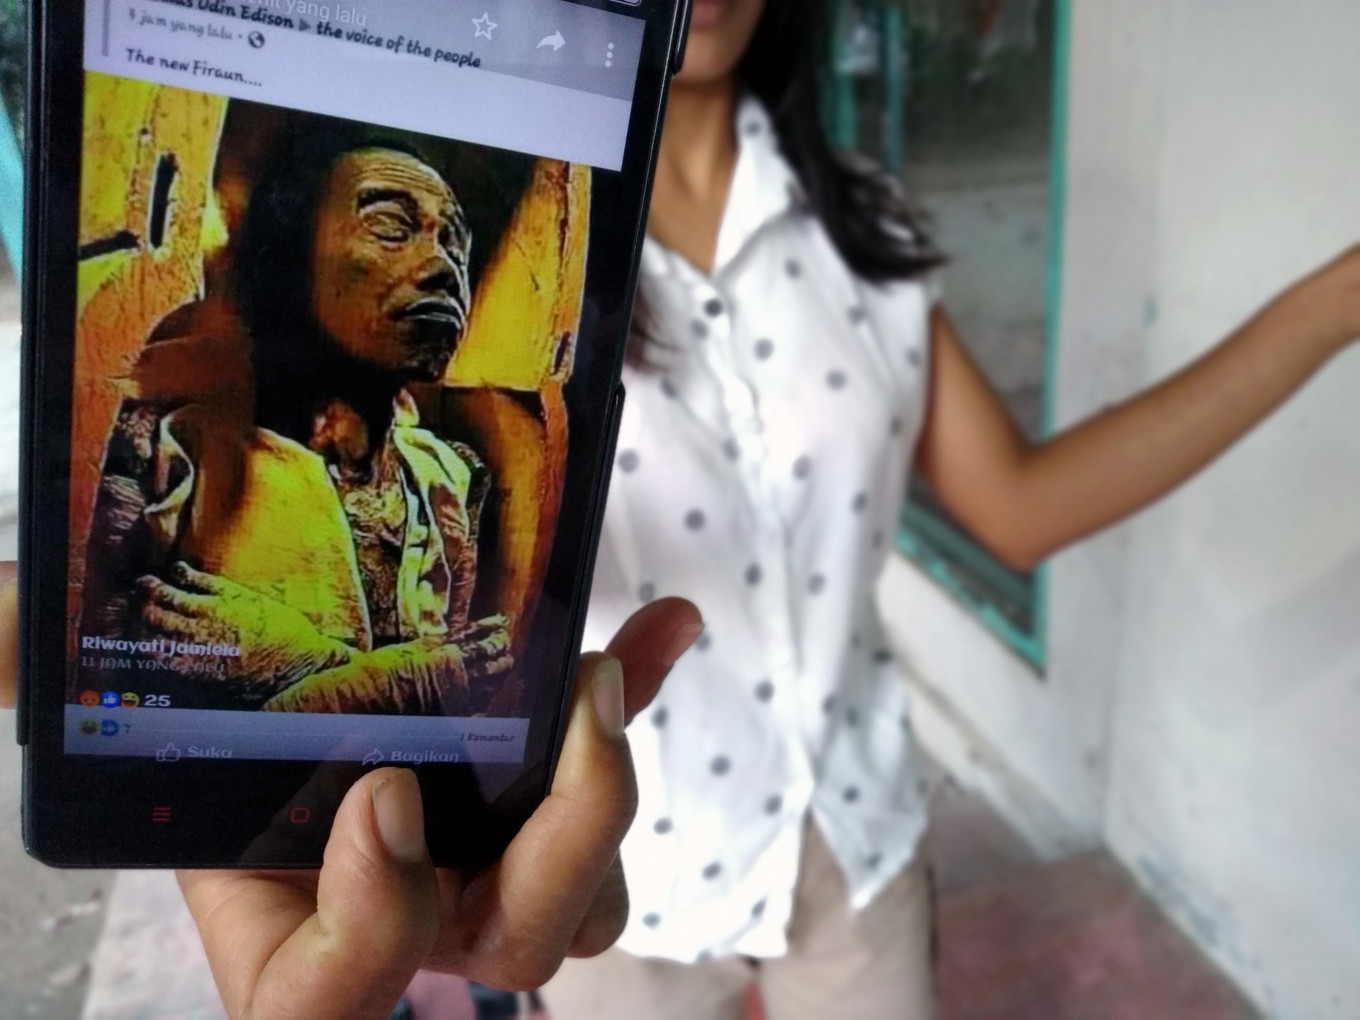 Police charge Blitar woman under ITE Law for sharing 'Jokowi pharaoh', 'dog demon' memes